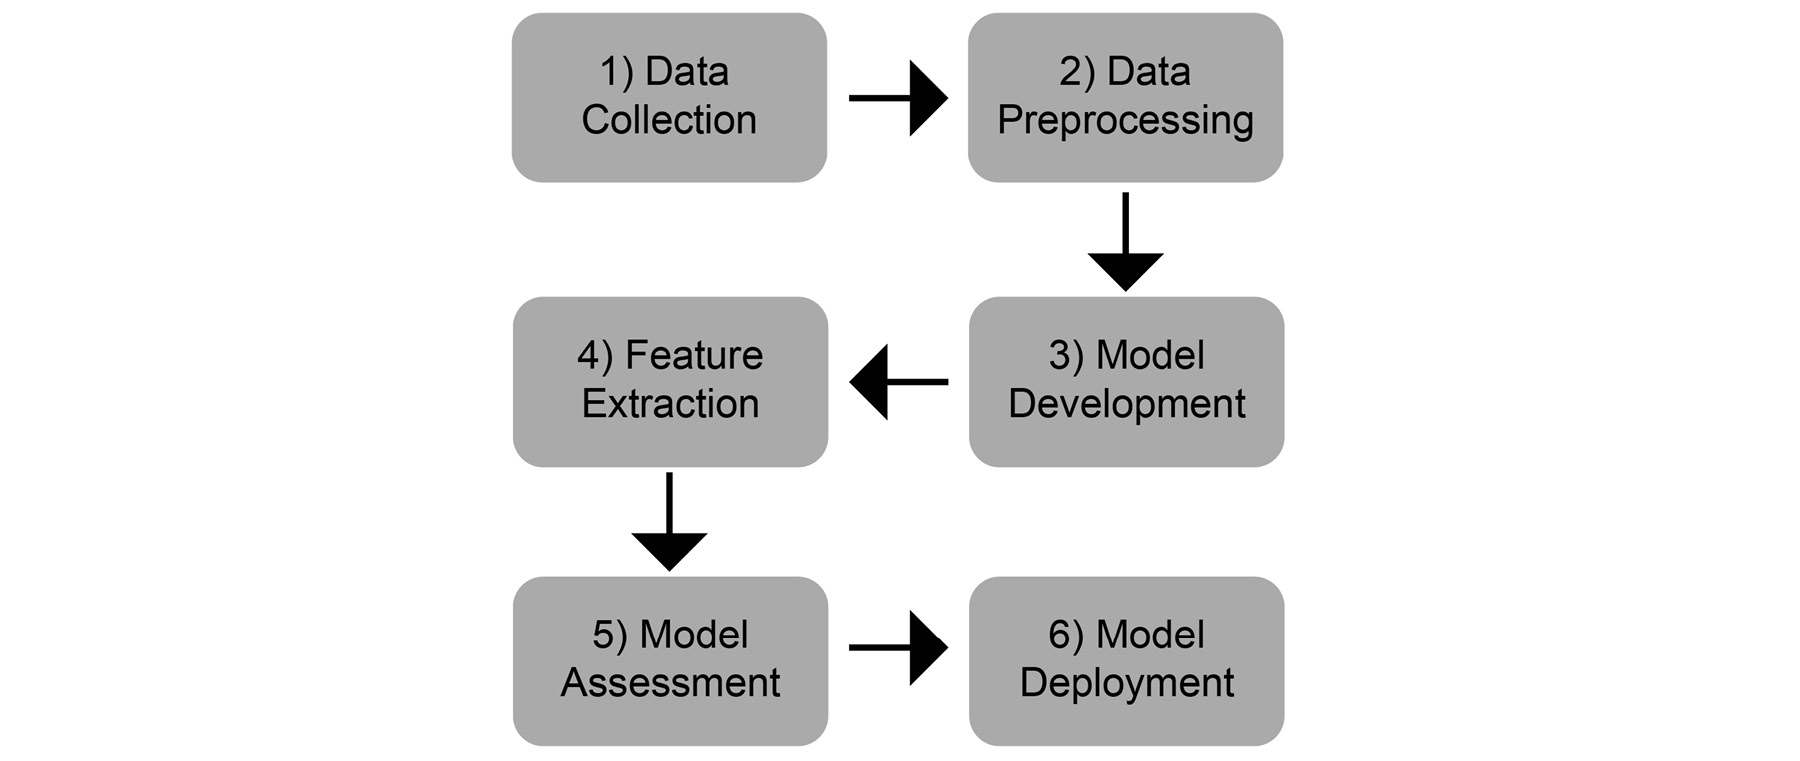 Figure 1.30: Phases of an NLP project